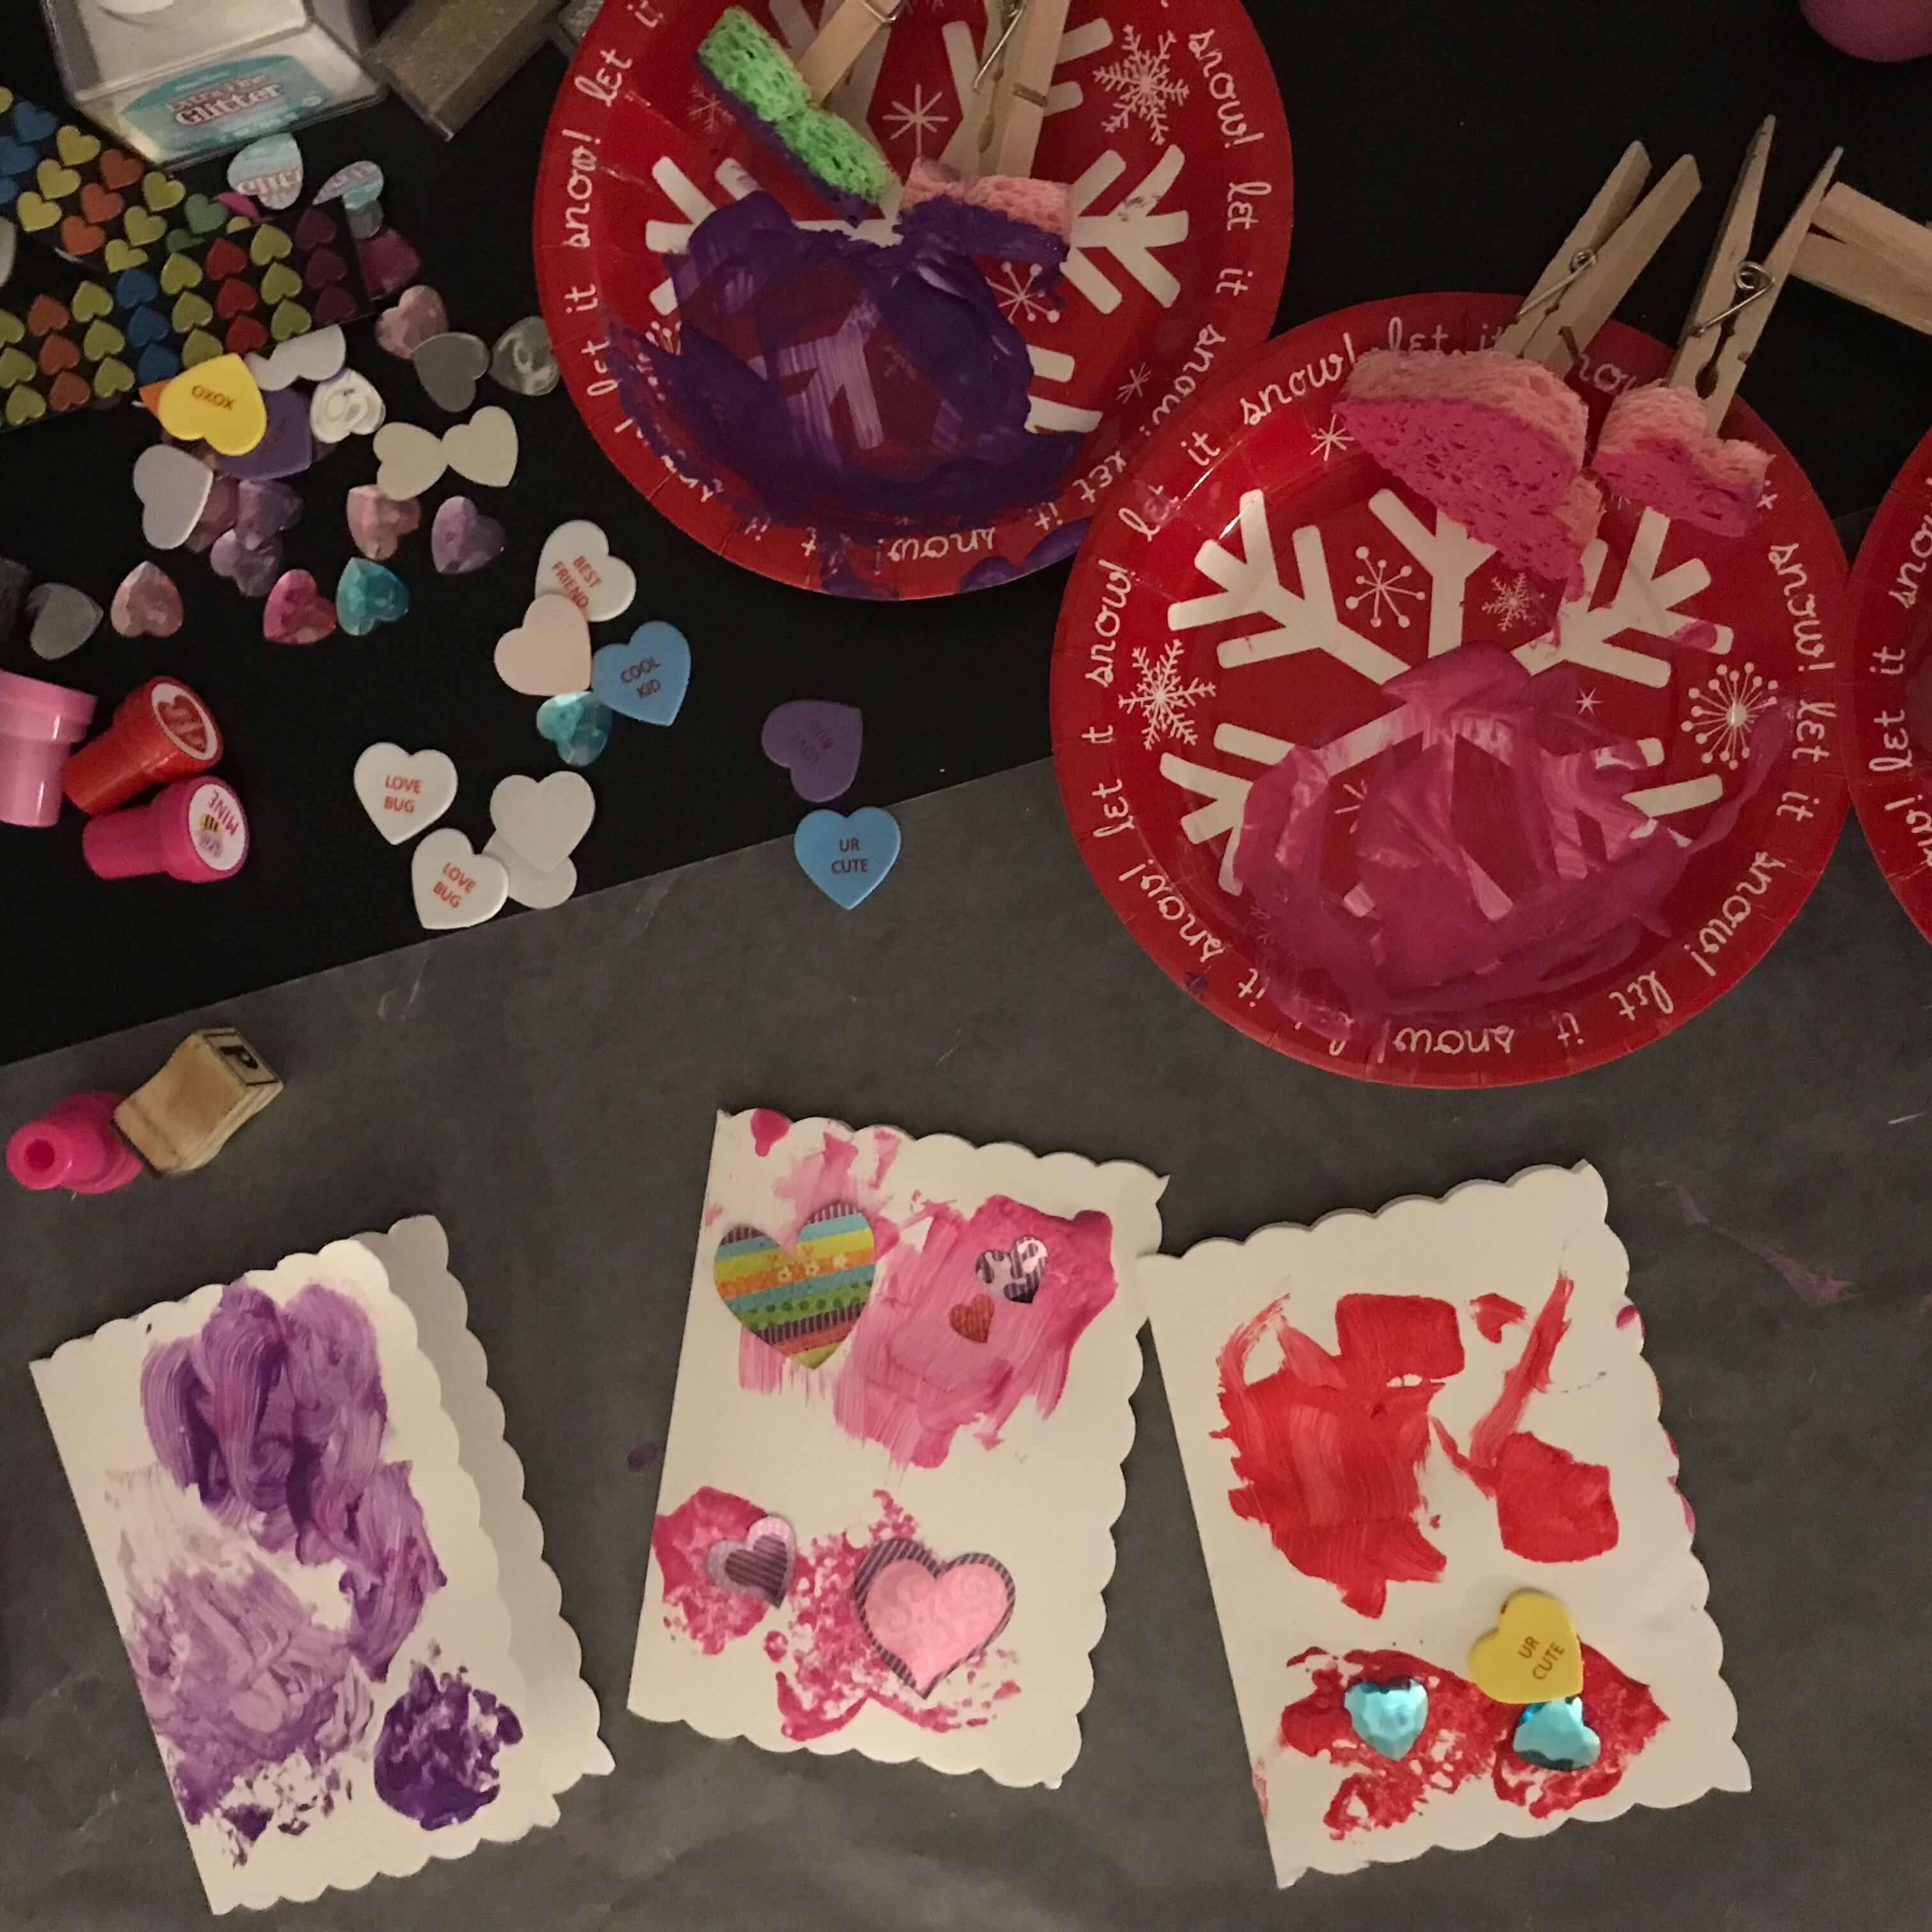 3 Valentine's Cards in the process of being made. They are surrounded by a variety of stickers, gems and other craft supplies.